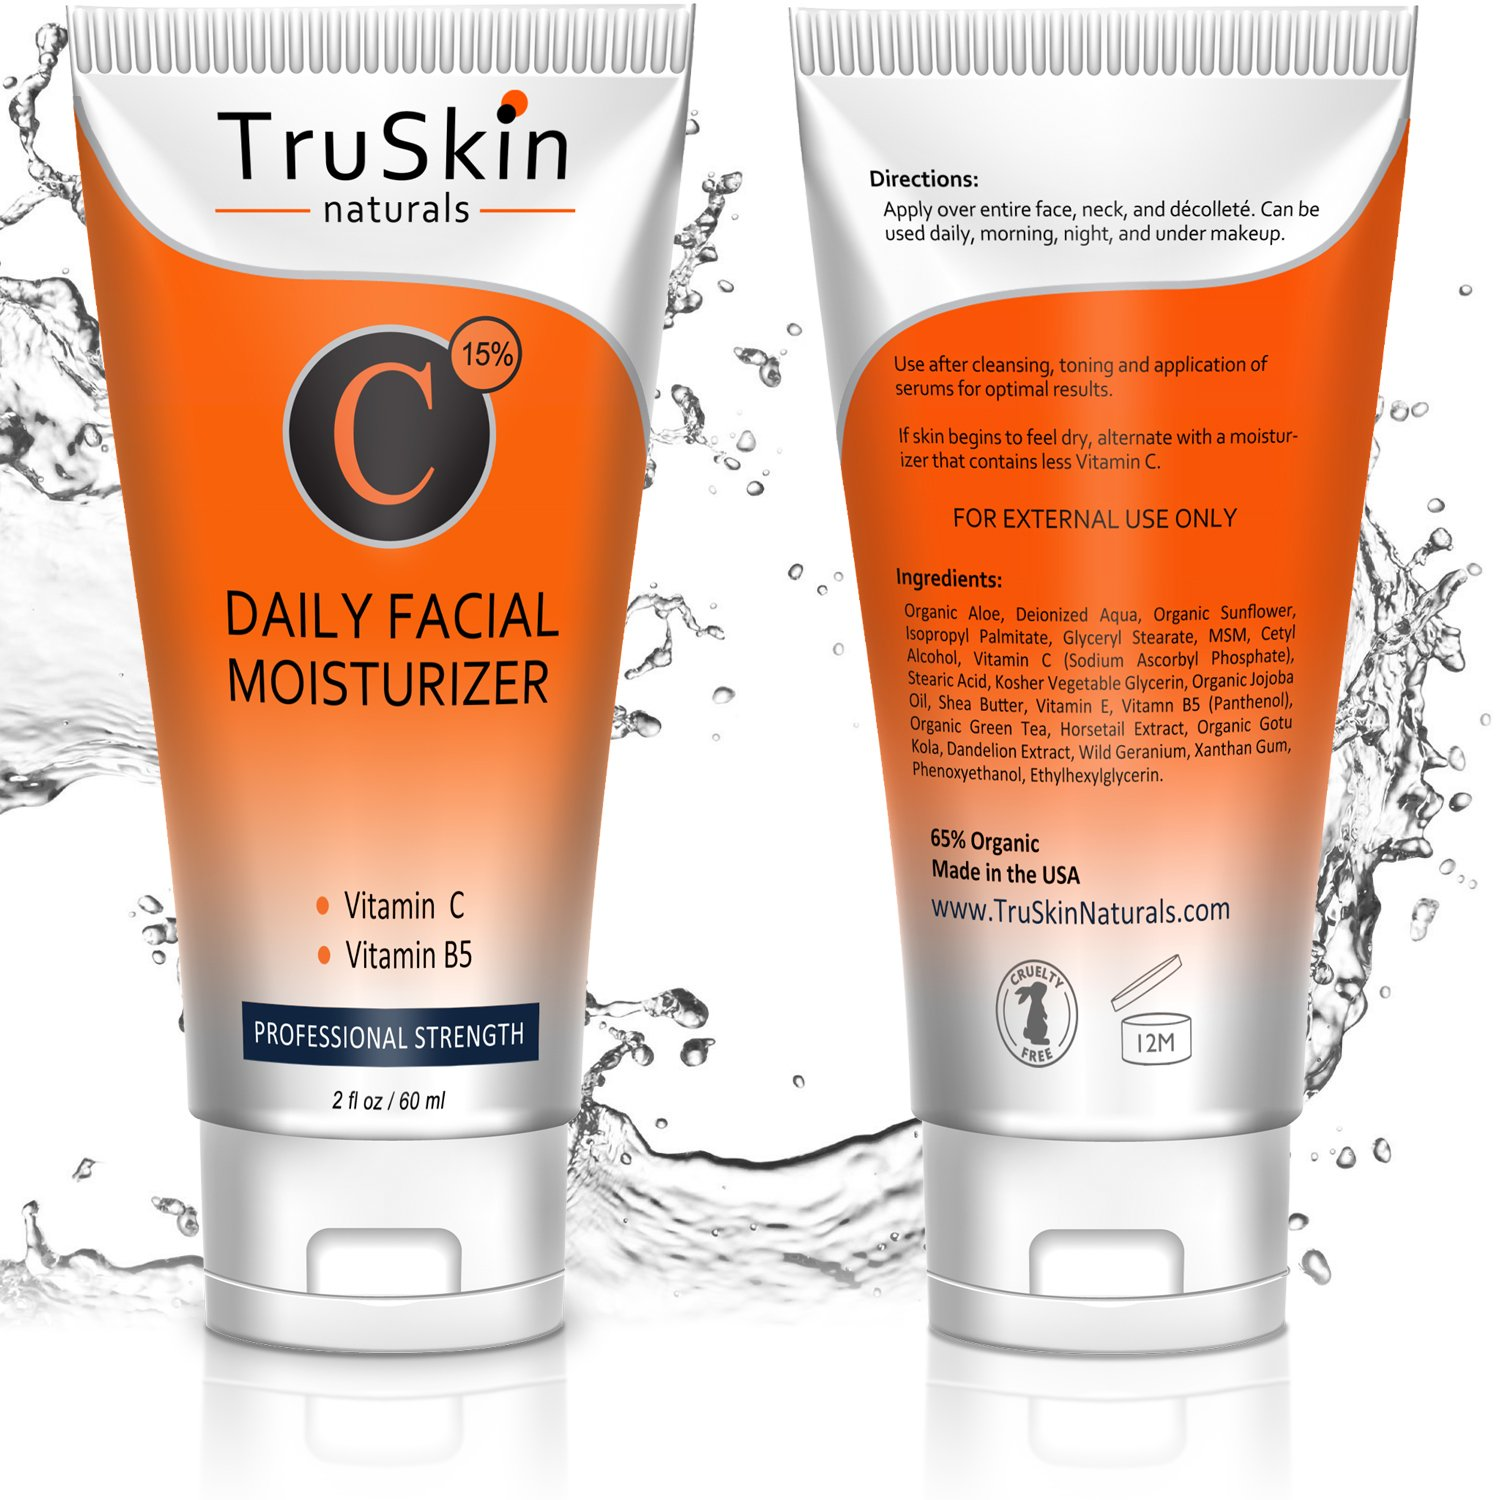 BEST Vitamin C Moisturizer Cream for Face, Neck & Décolleté for Anti-Aging, Wrinkles, Age Spots, Skin Tone, Firming, and Dark Circles. 2oz by TruSkin Naturals (Image #2)